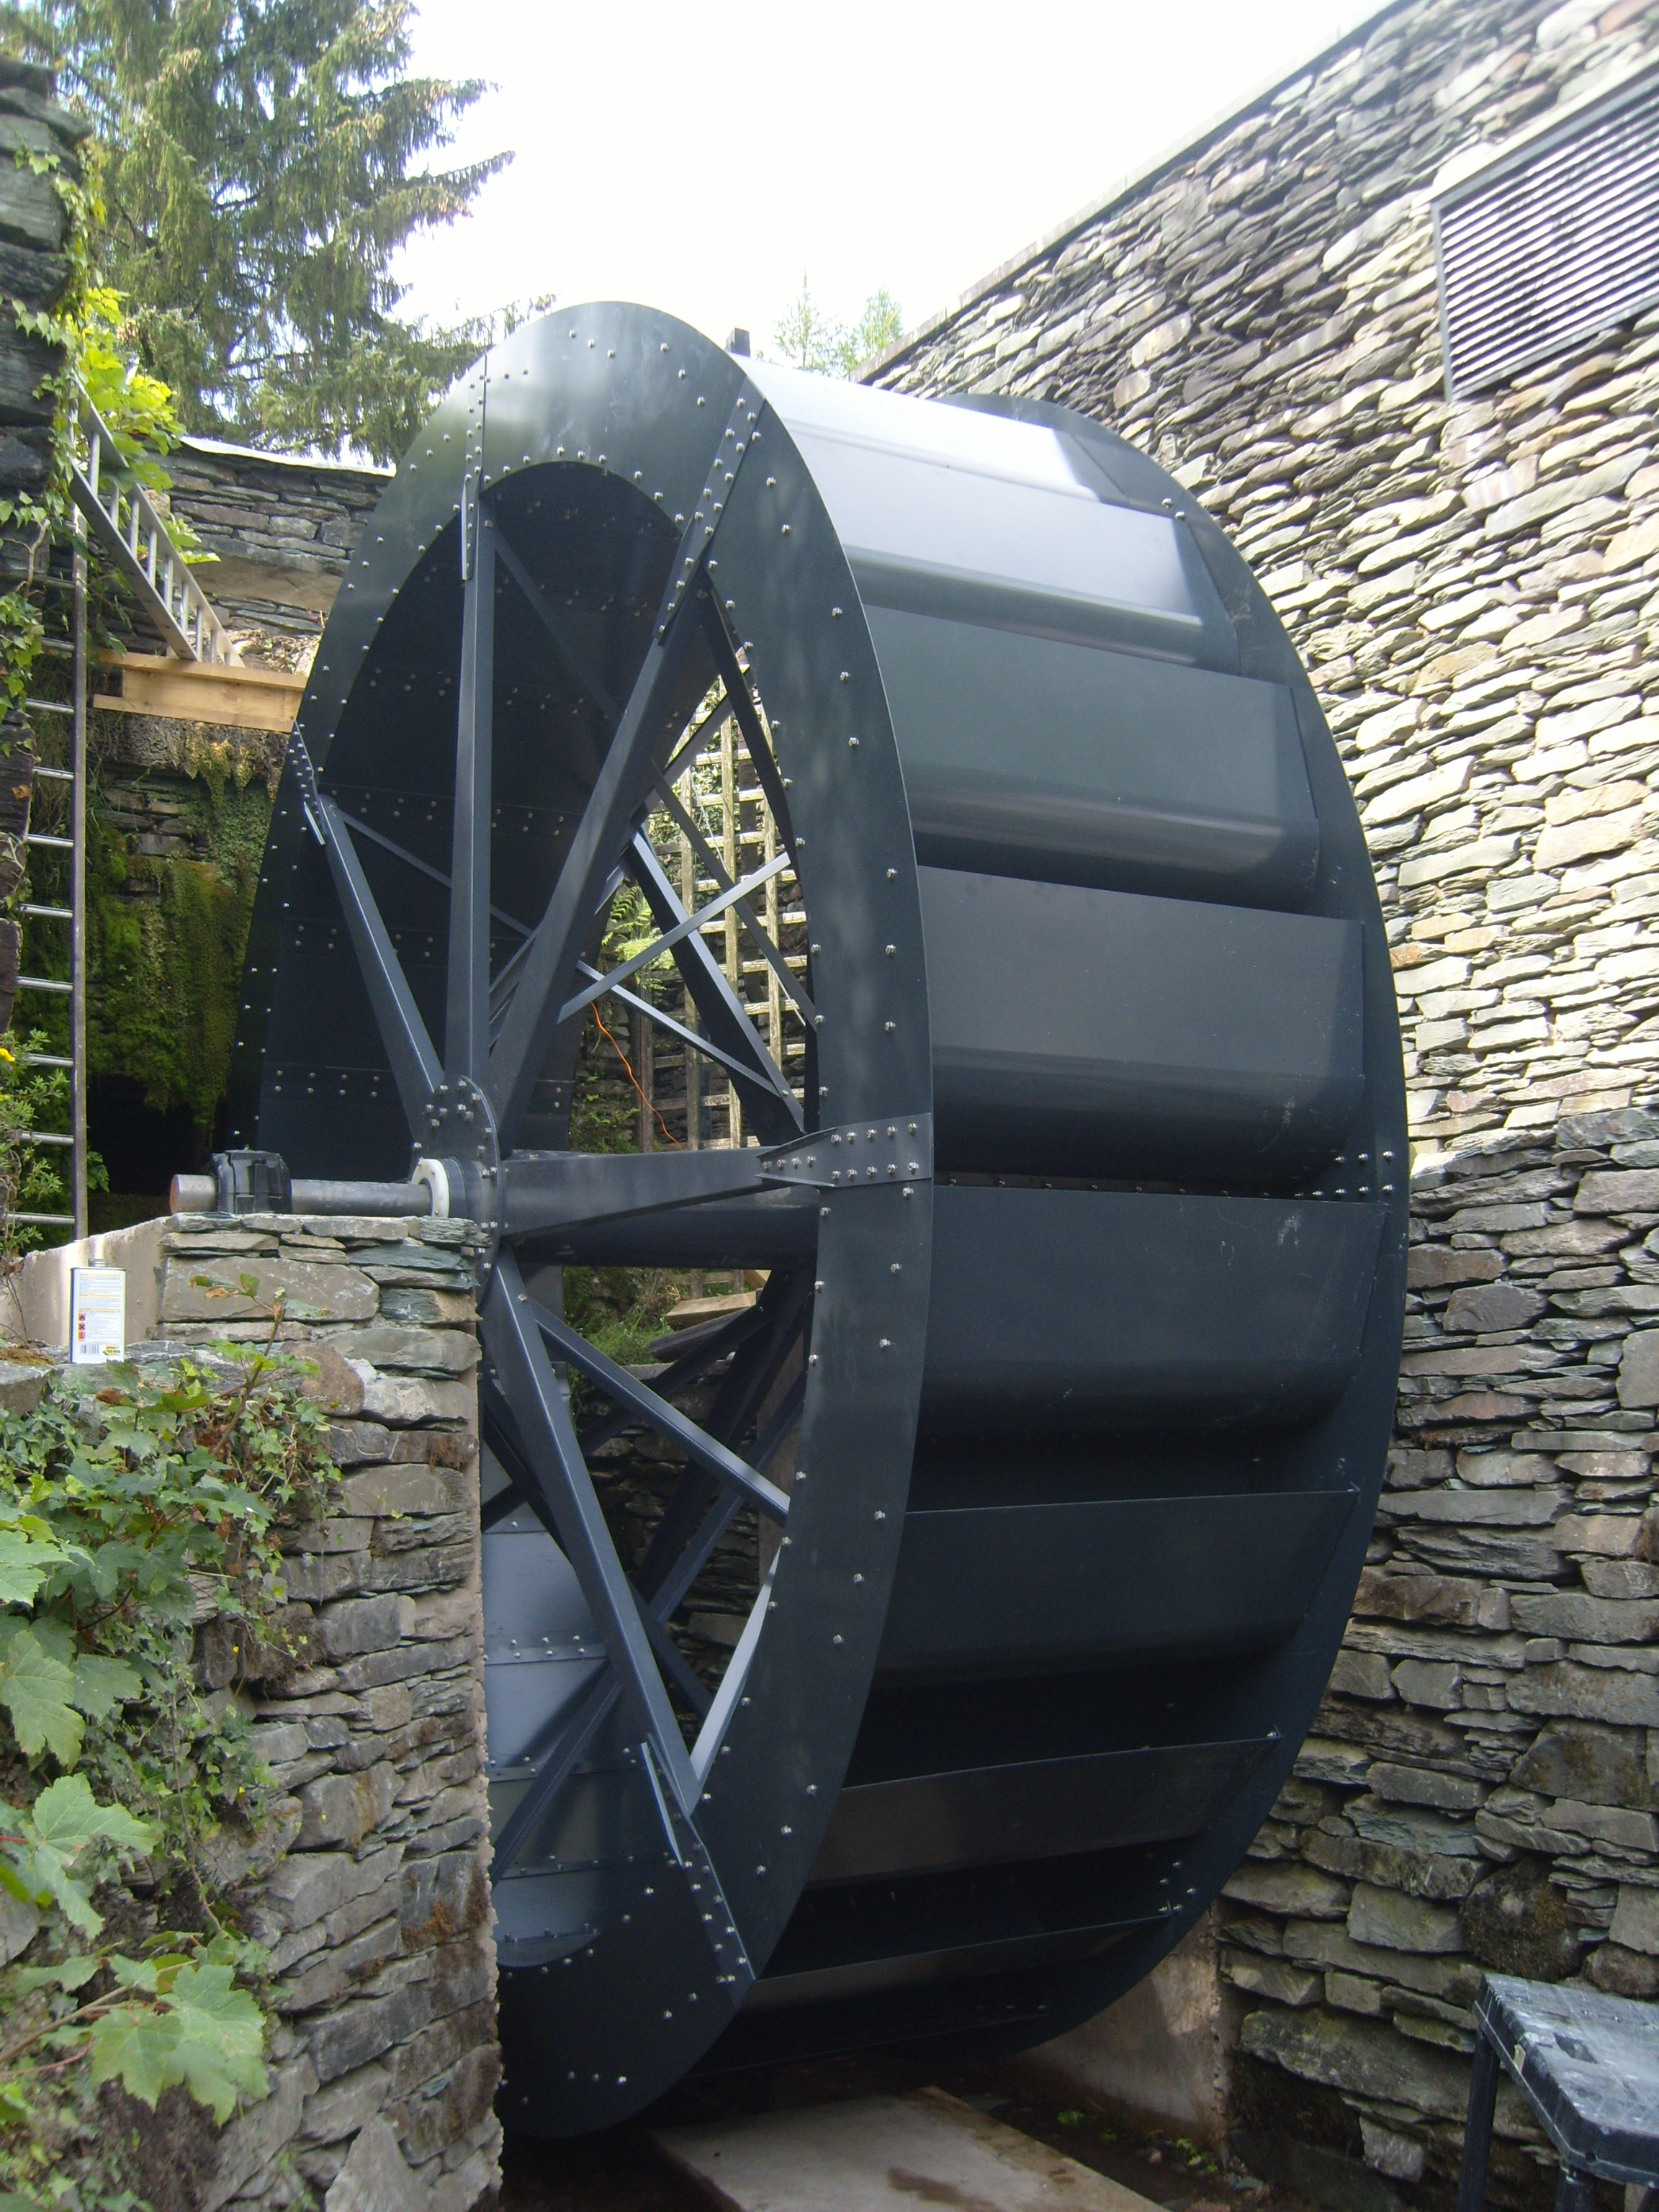 The waterwheel is 4 metres in diameter